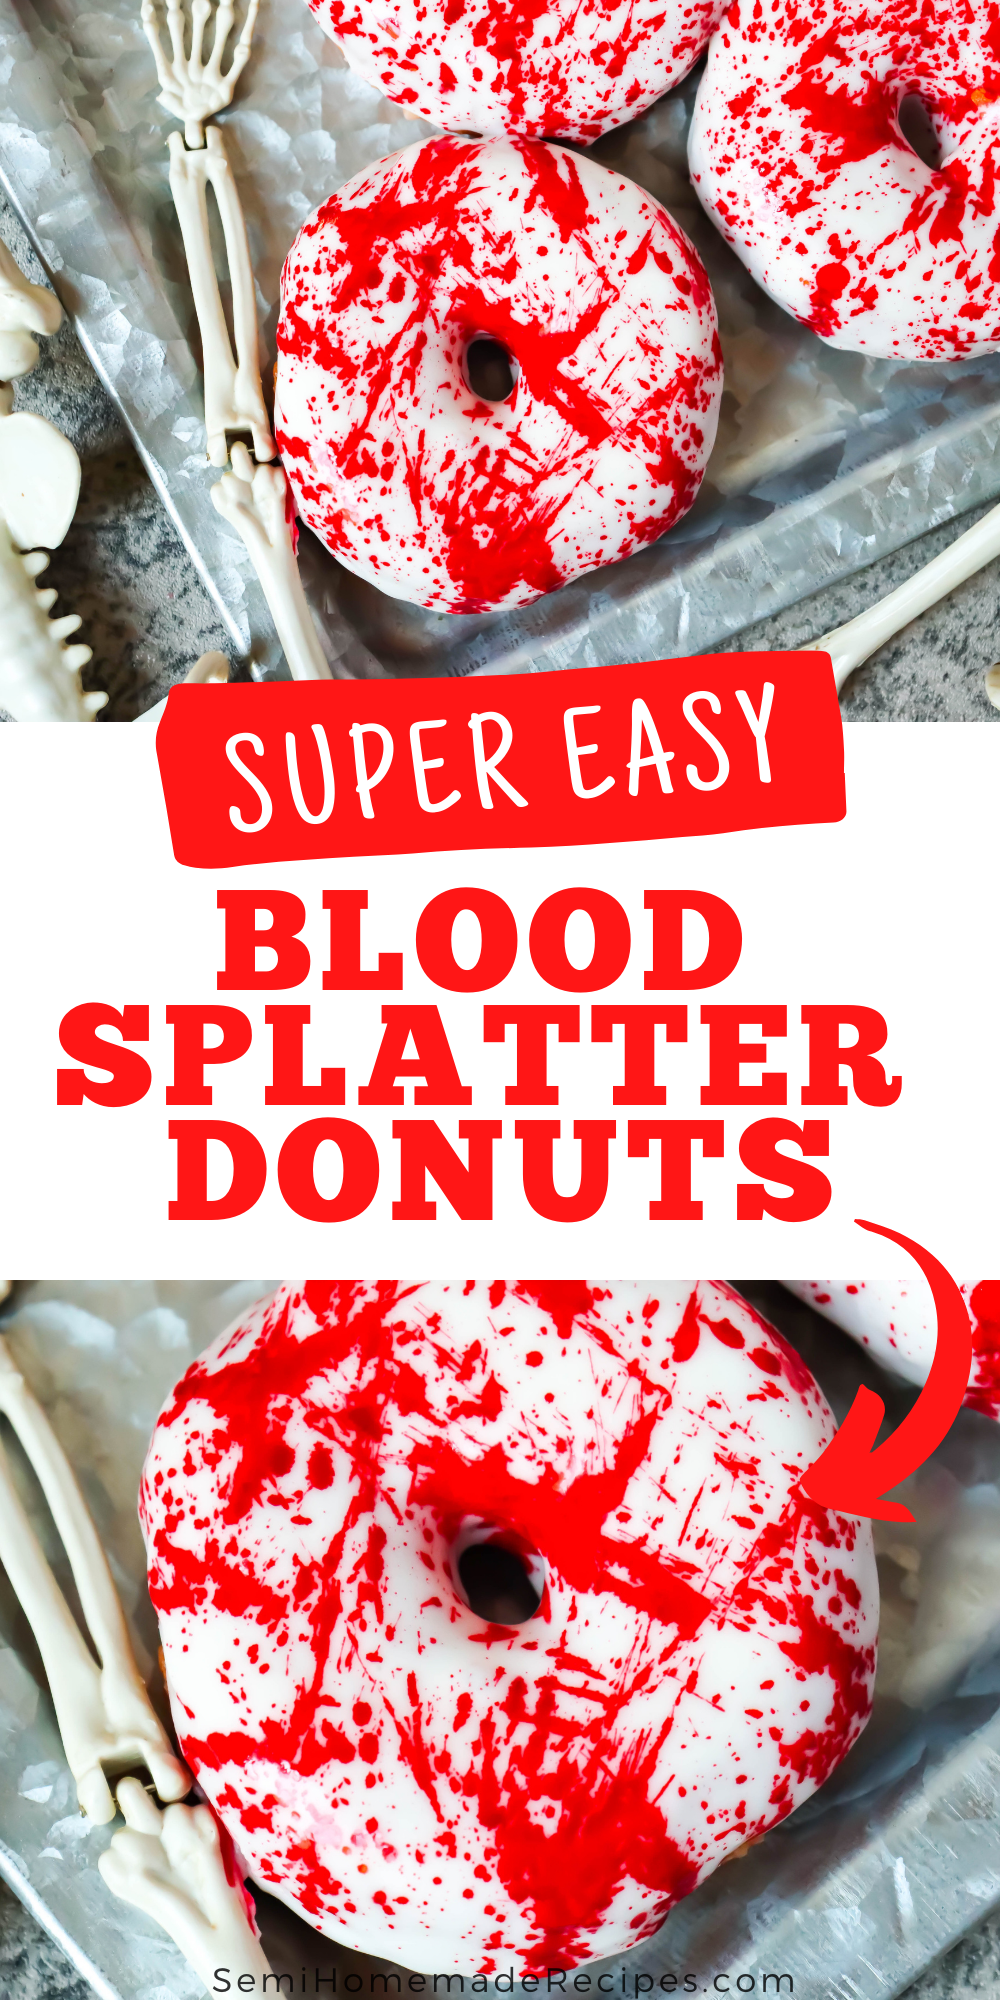 A blood splatter dessert that is perfect for Halloween. You only need a few things like, Donuts, a powdered sugar frosting and food coloring for this spooky dessert!